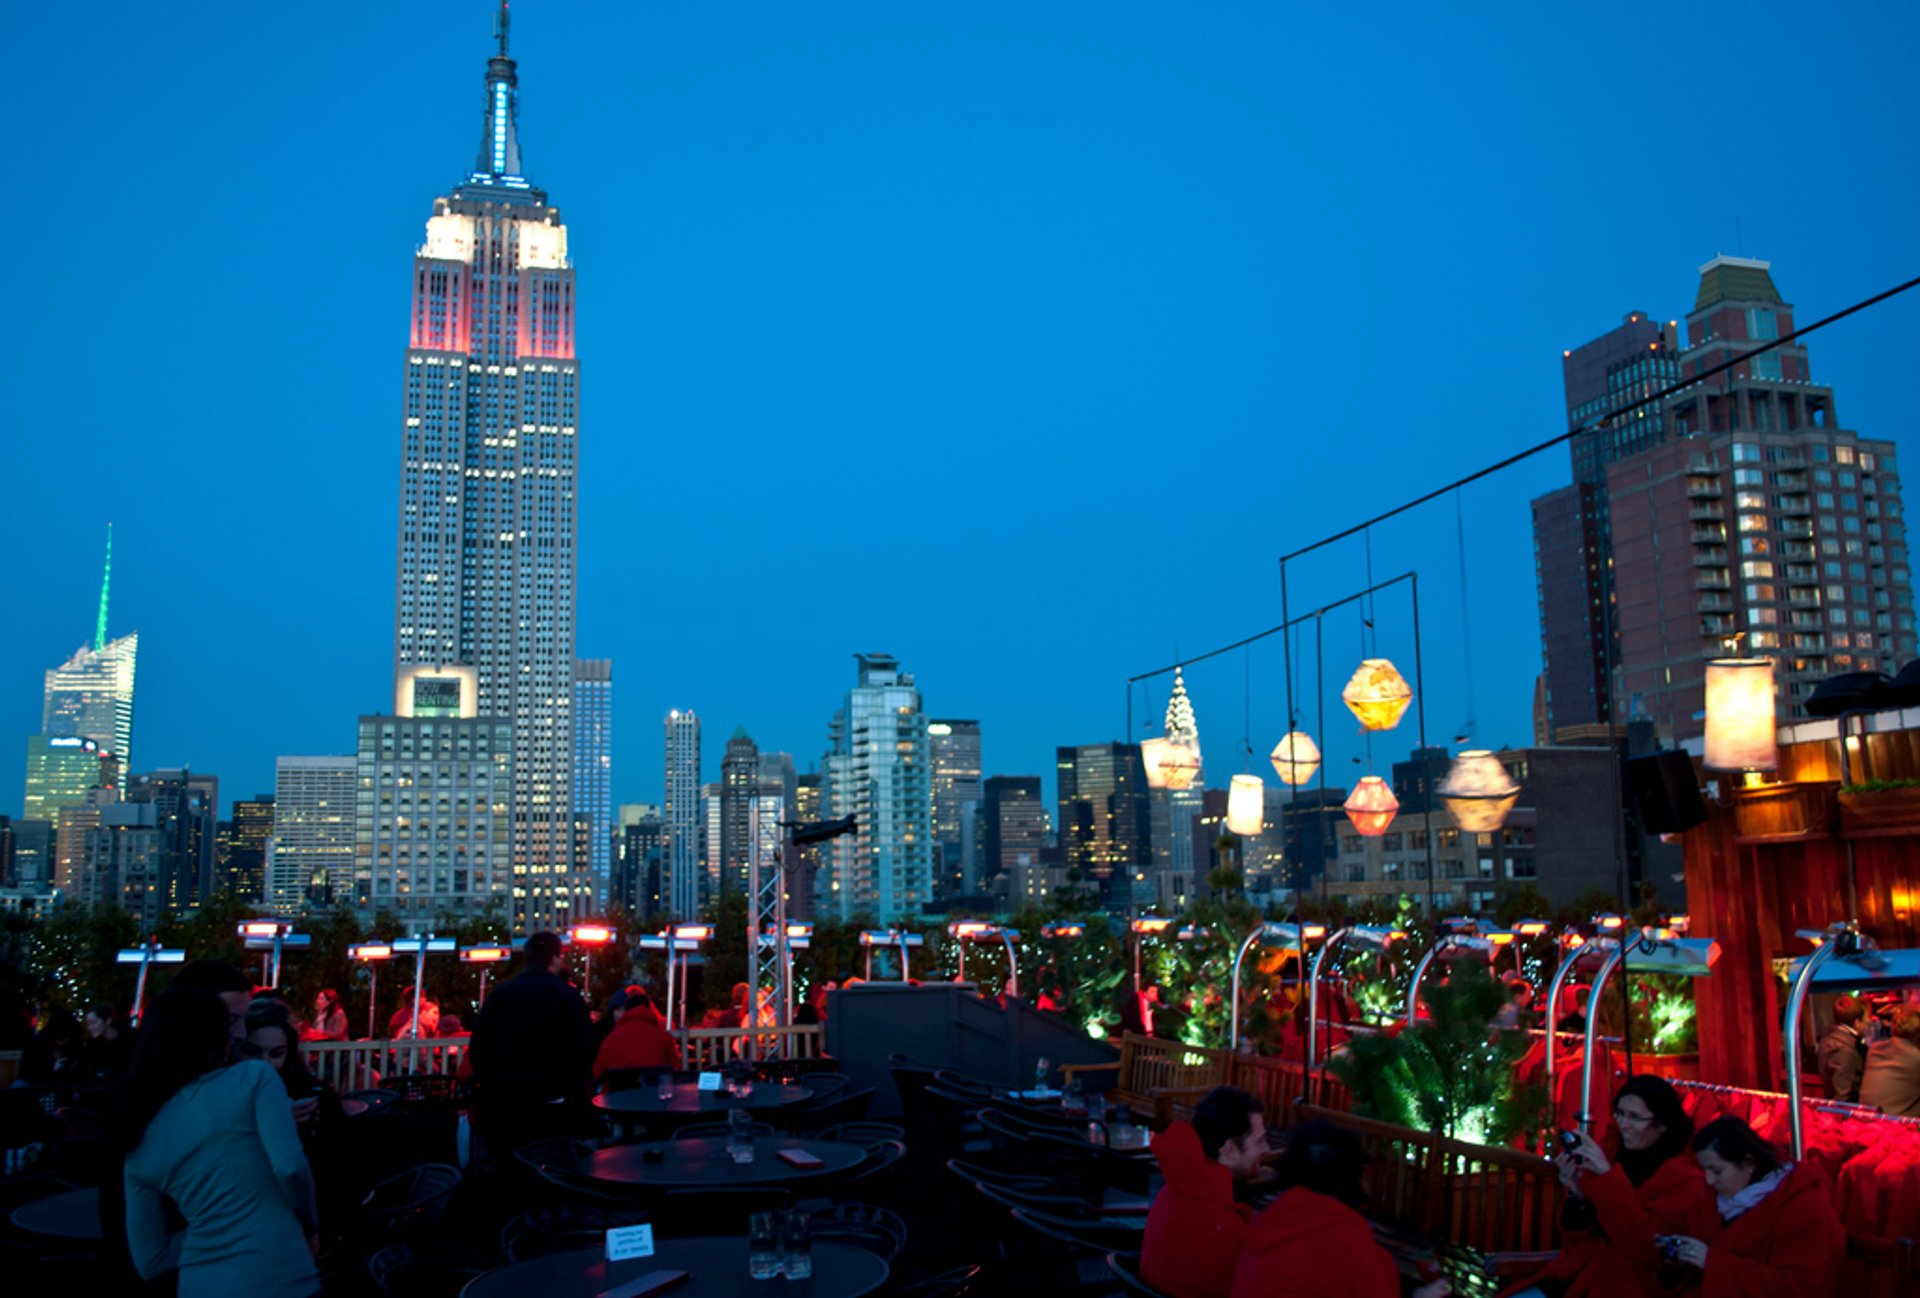 Rooftop Bars in New York 2020 - Best Time